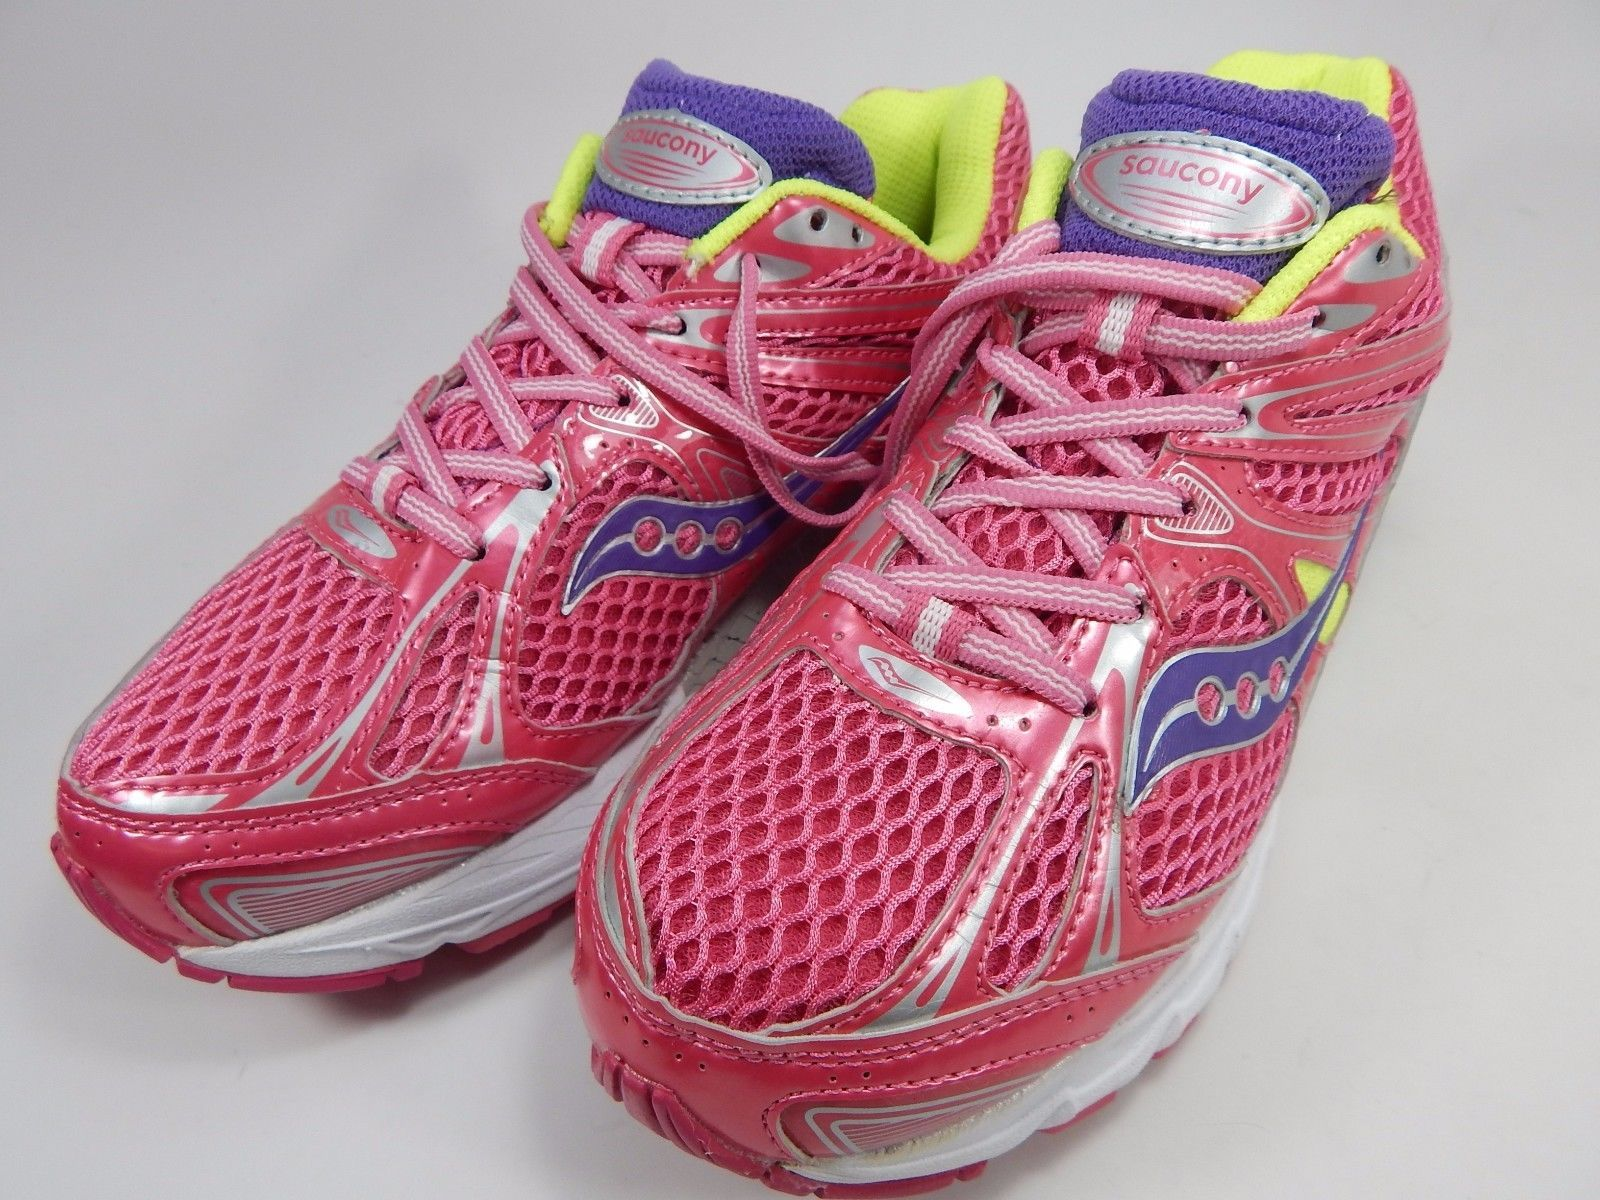 Saucony Guide 6 Girl's Youth Shoes Size US 5 M (B)  (5 Y) EU 37.5 Pink 80100-4